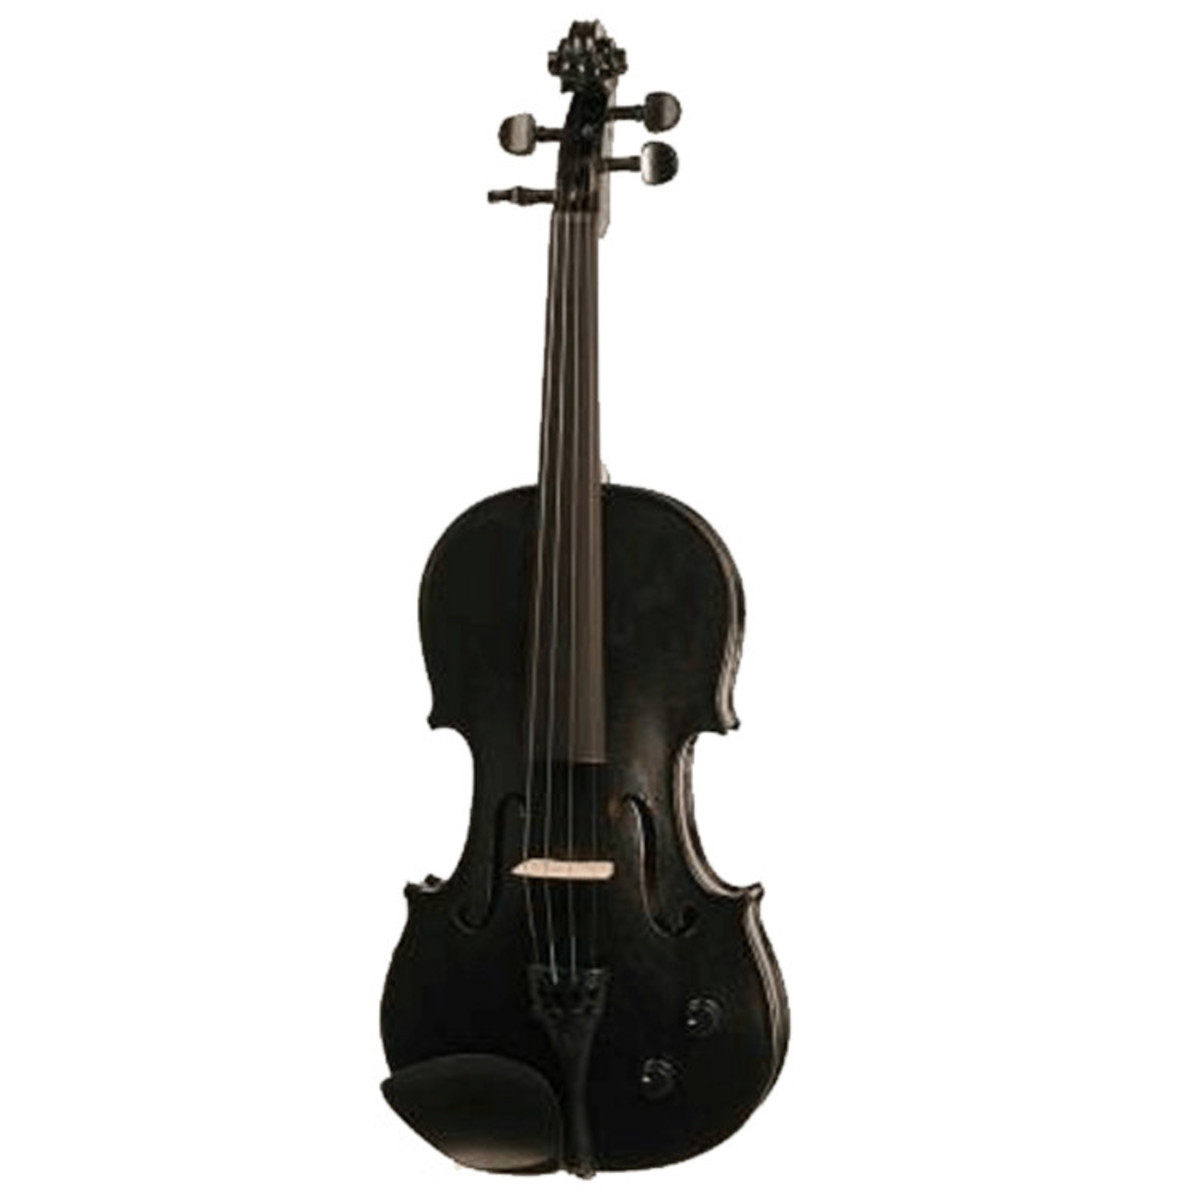 stentor electric violin outfit 4 4 black nearly new at. Black Bedroom Furniture Sets. Home Design Ideas